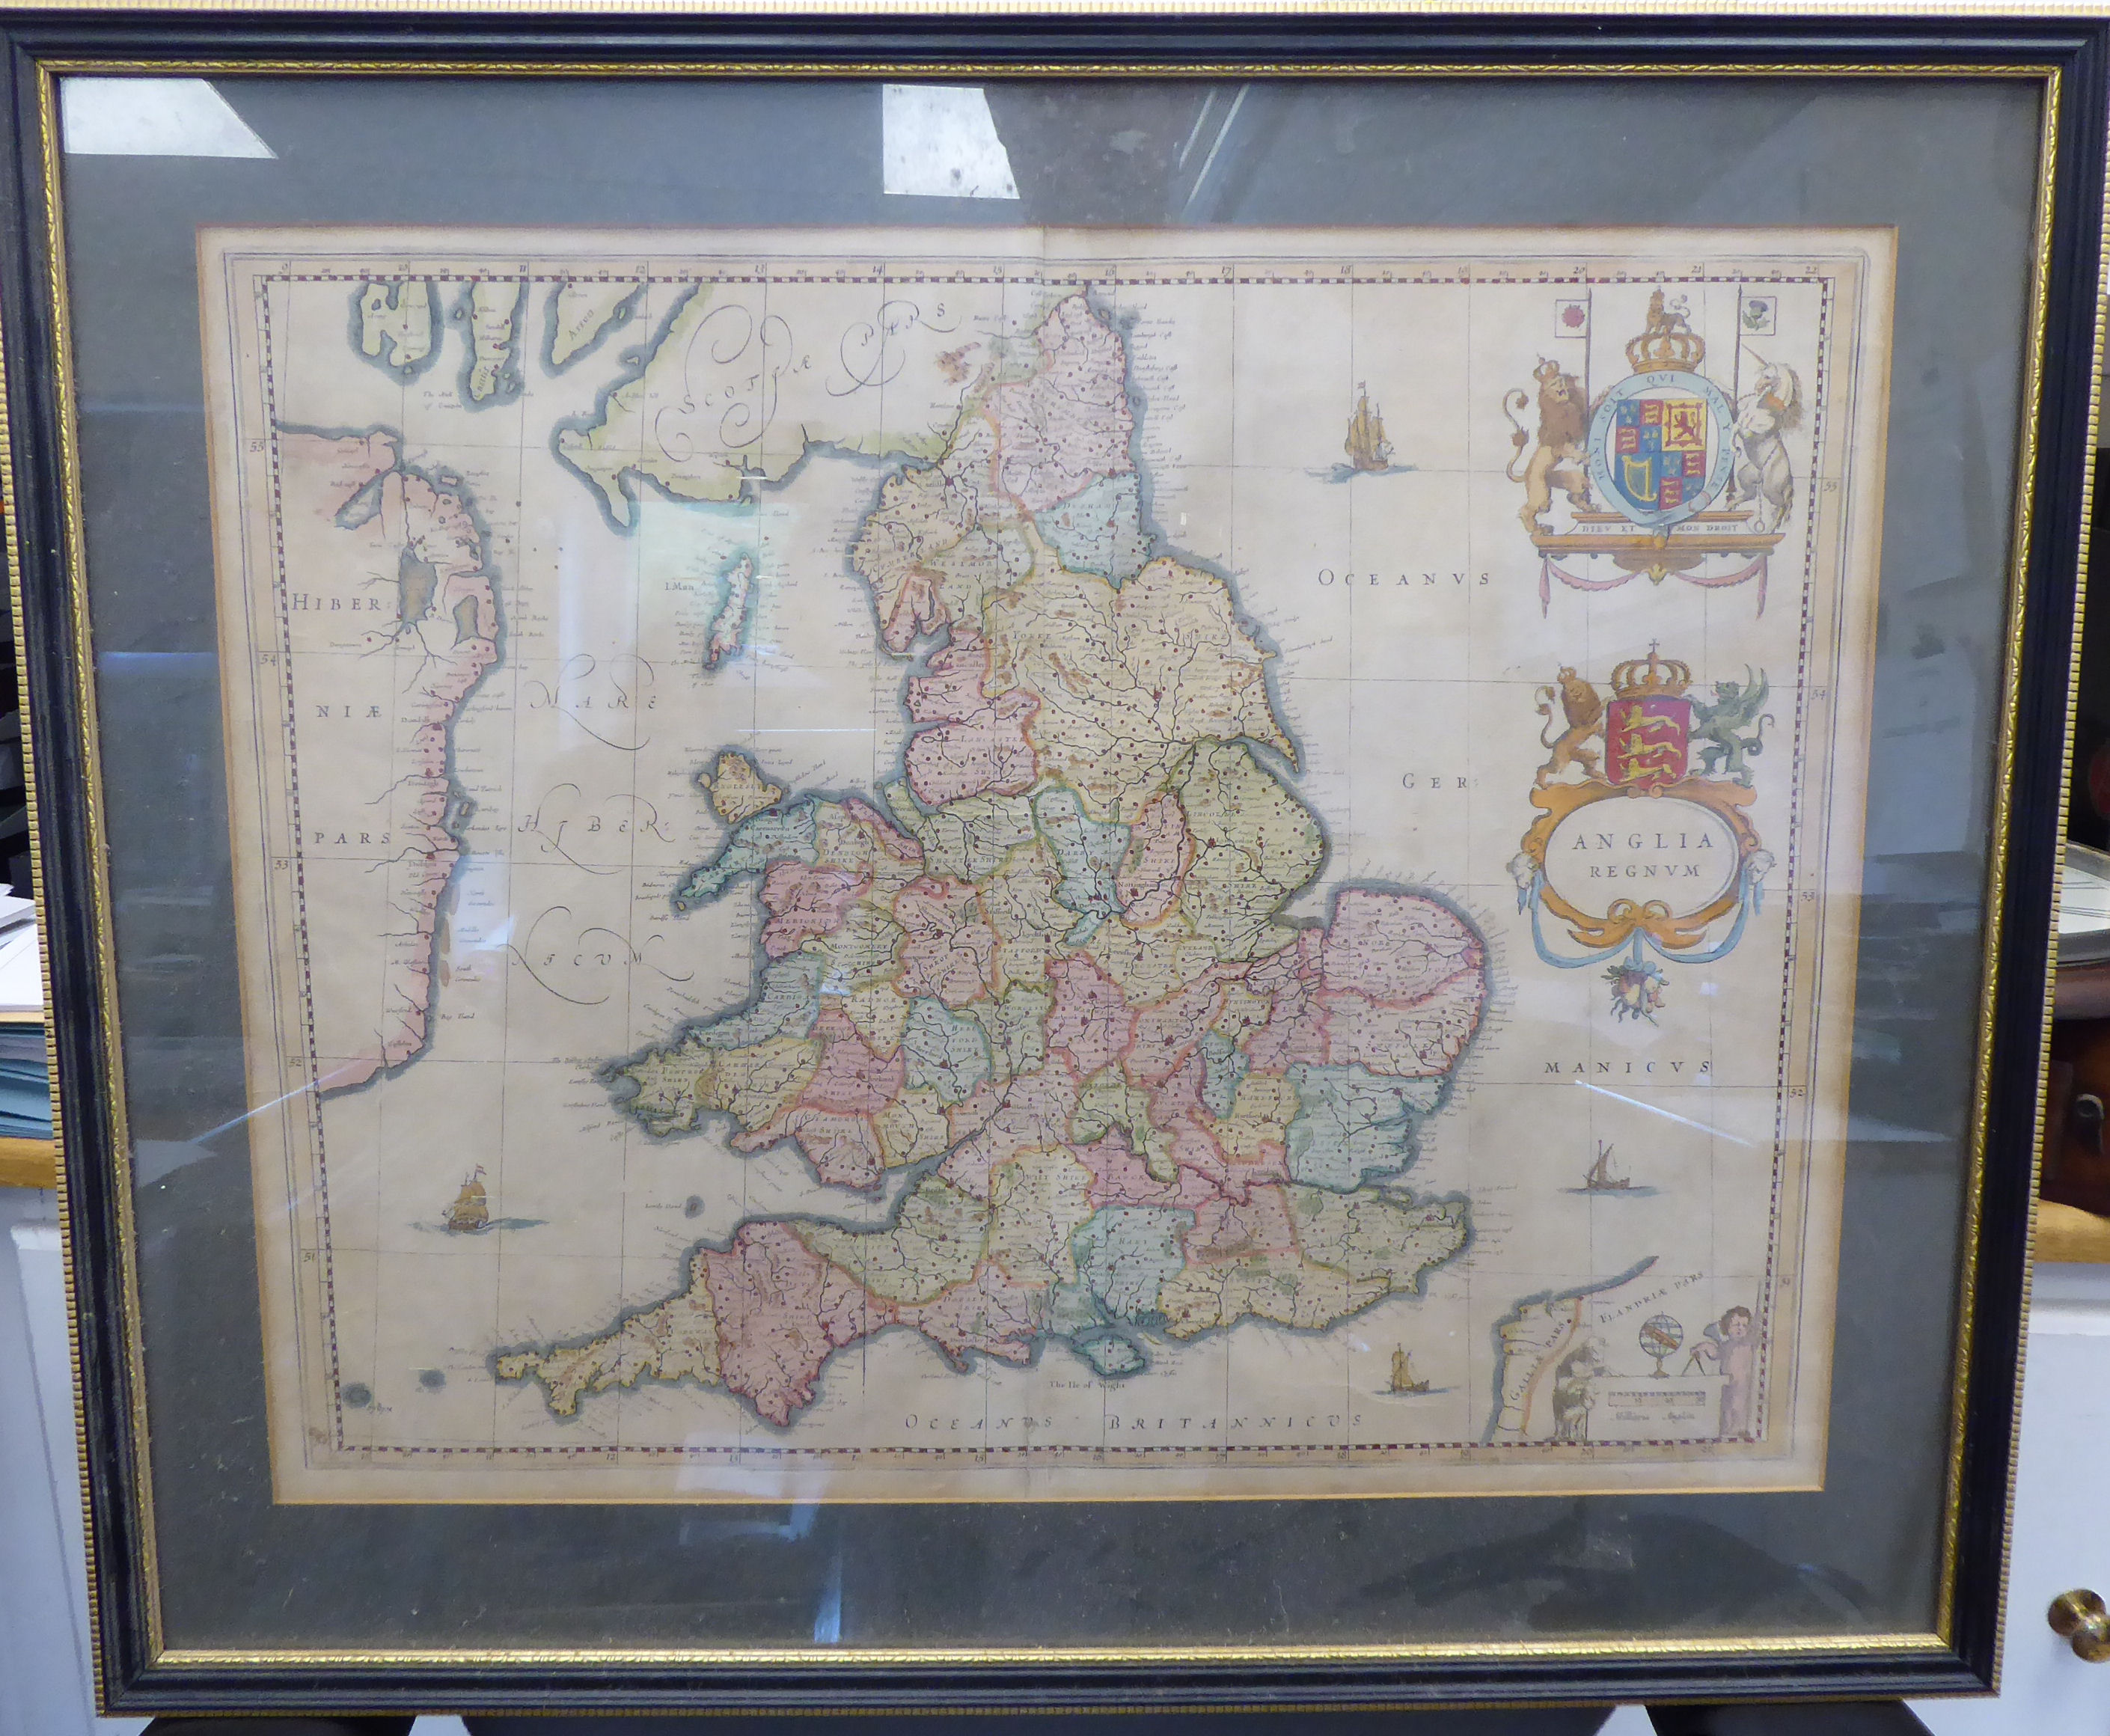 Lot 39 - A mid 17thC J Blaeu coloured map 'Anglia Regnvm' incorporating a scrolled title cartouche and arms